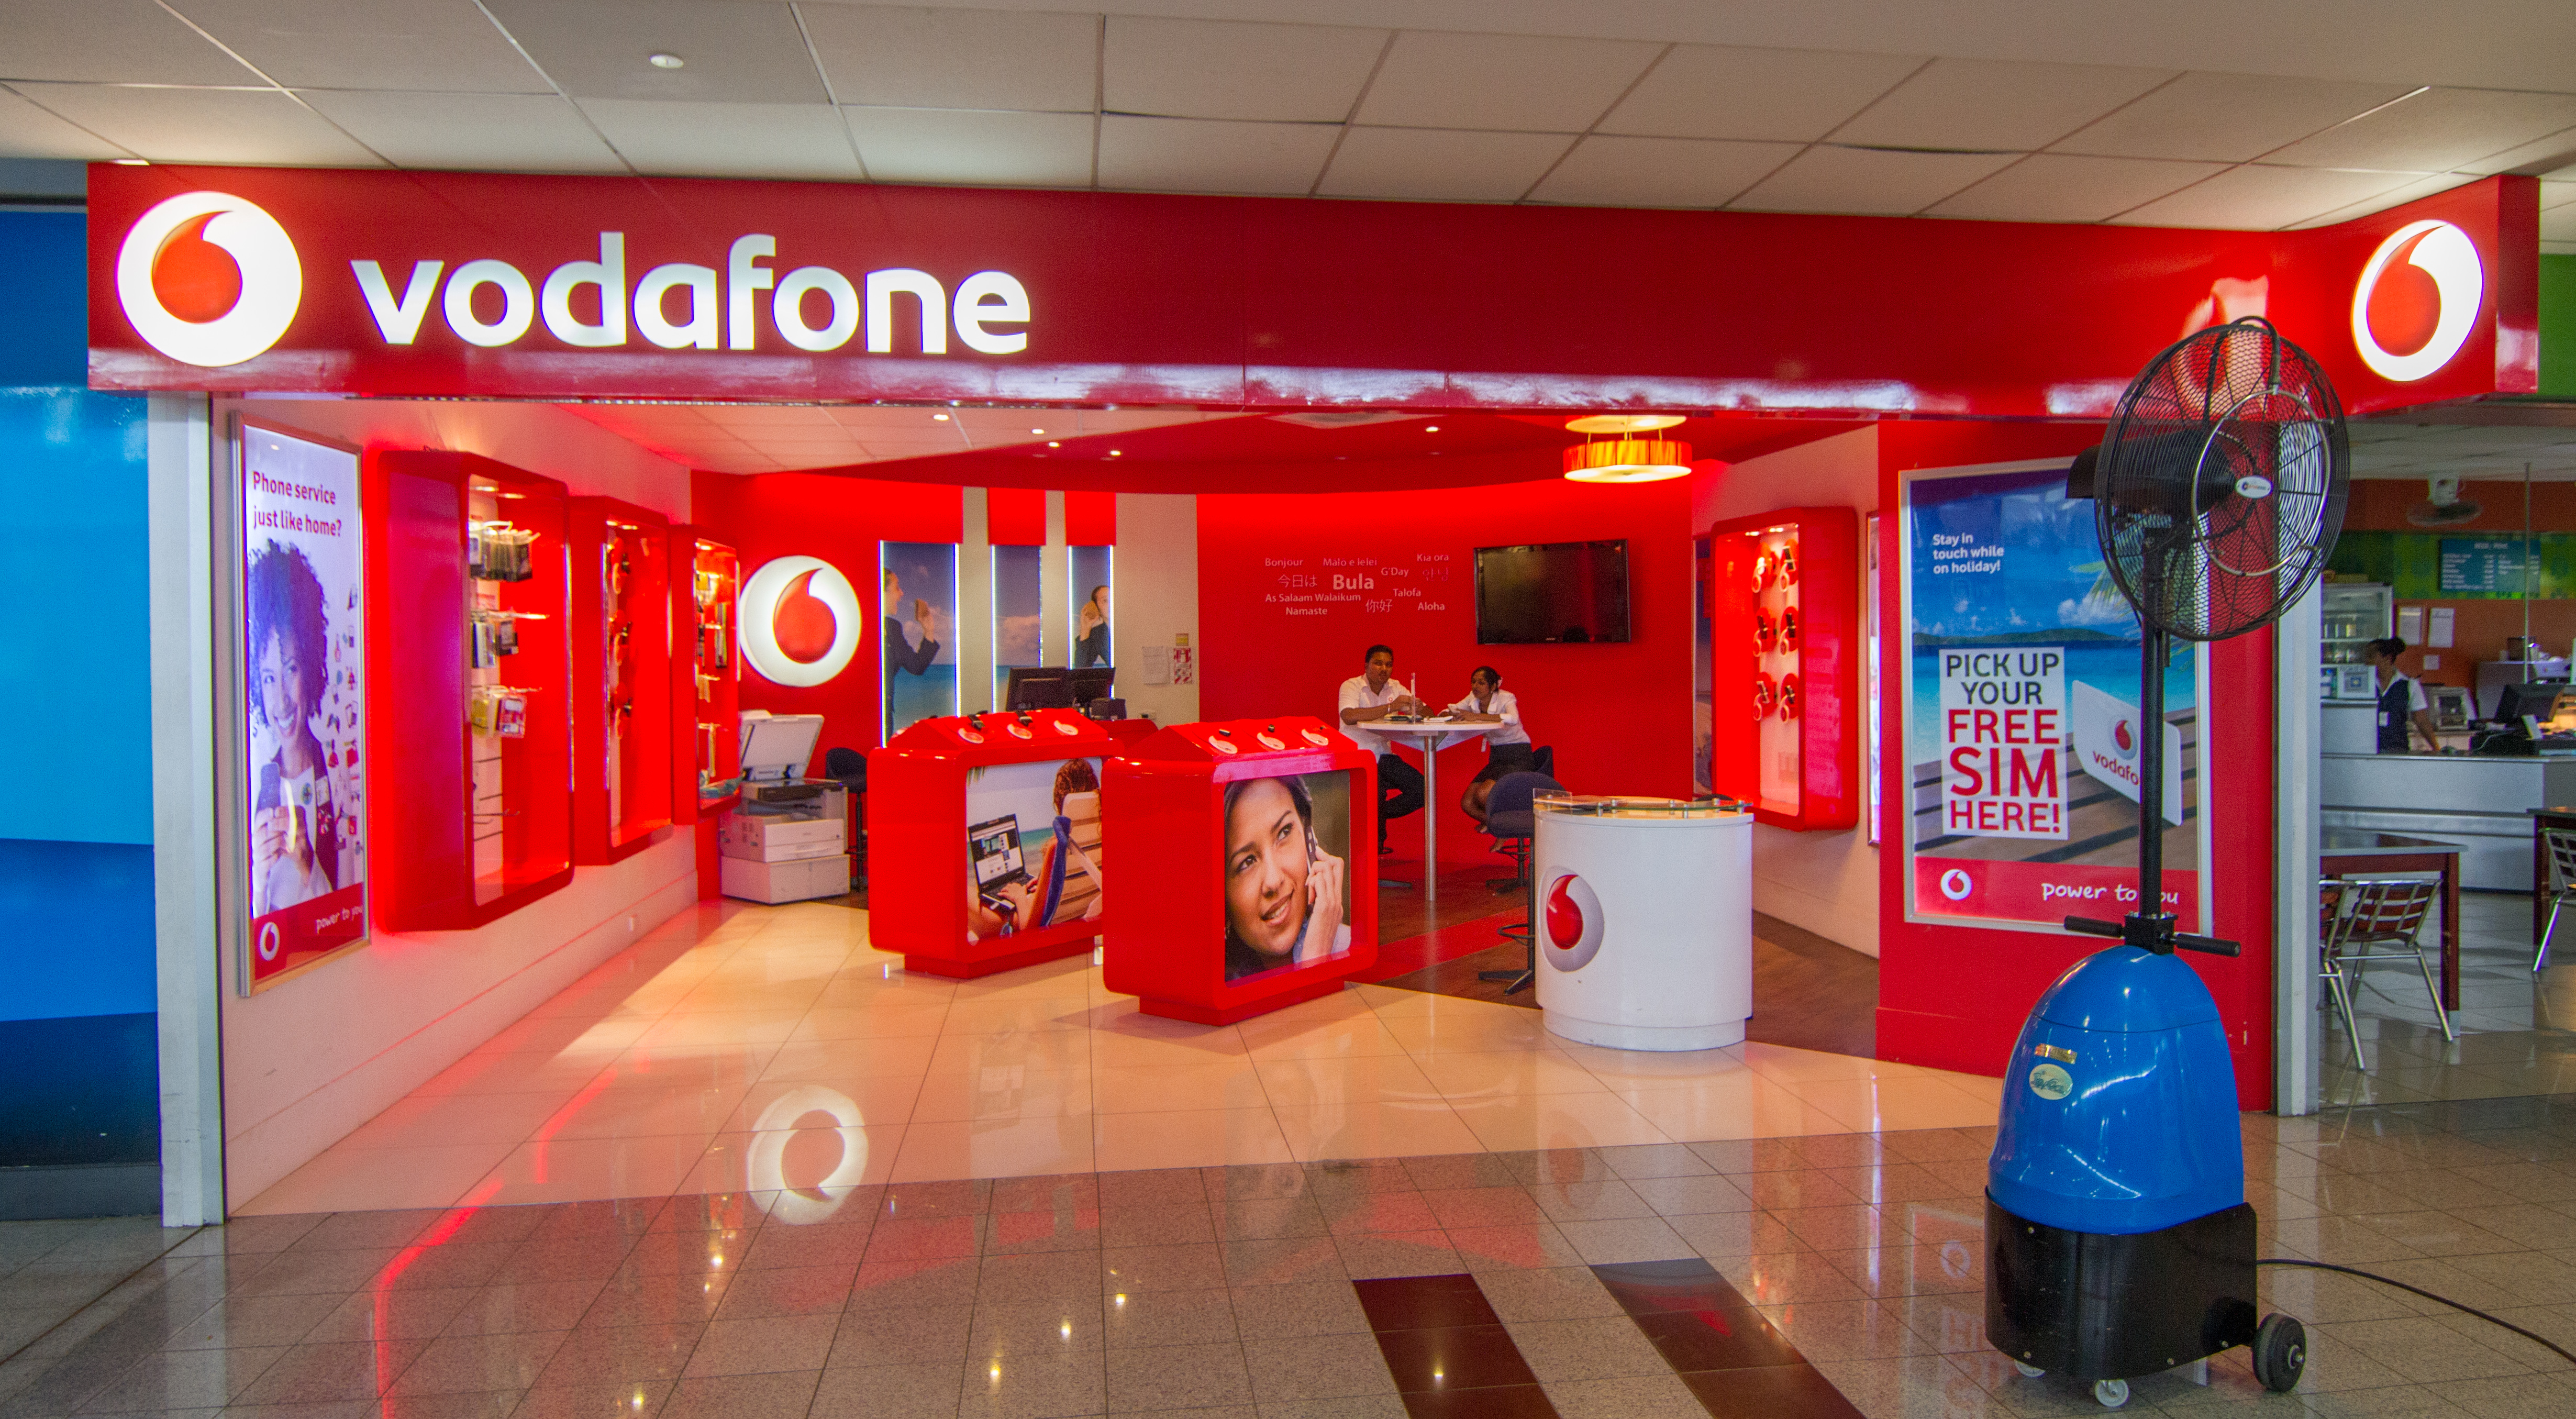 The international arbitration tribunal had then also ruled that the Indian government must reimburse GBP 4.3 million to Vodafone Group for costs incurred on legal representation and assistance as well as for fees paid by the company to the arbitration court.